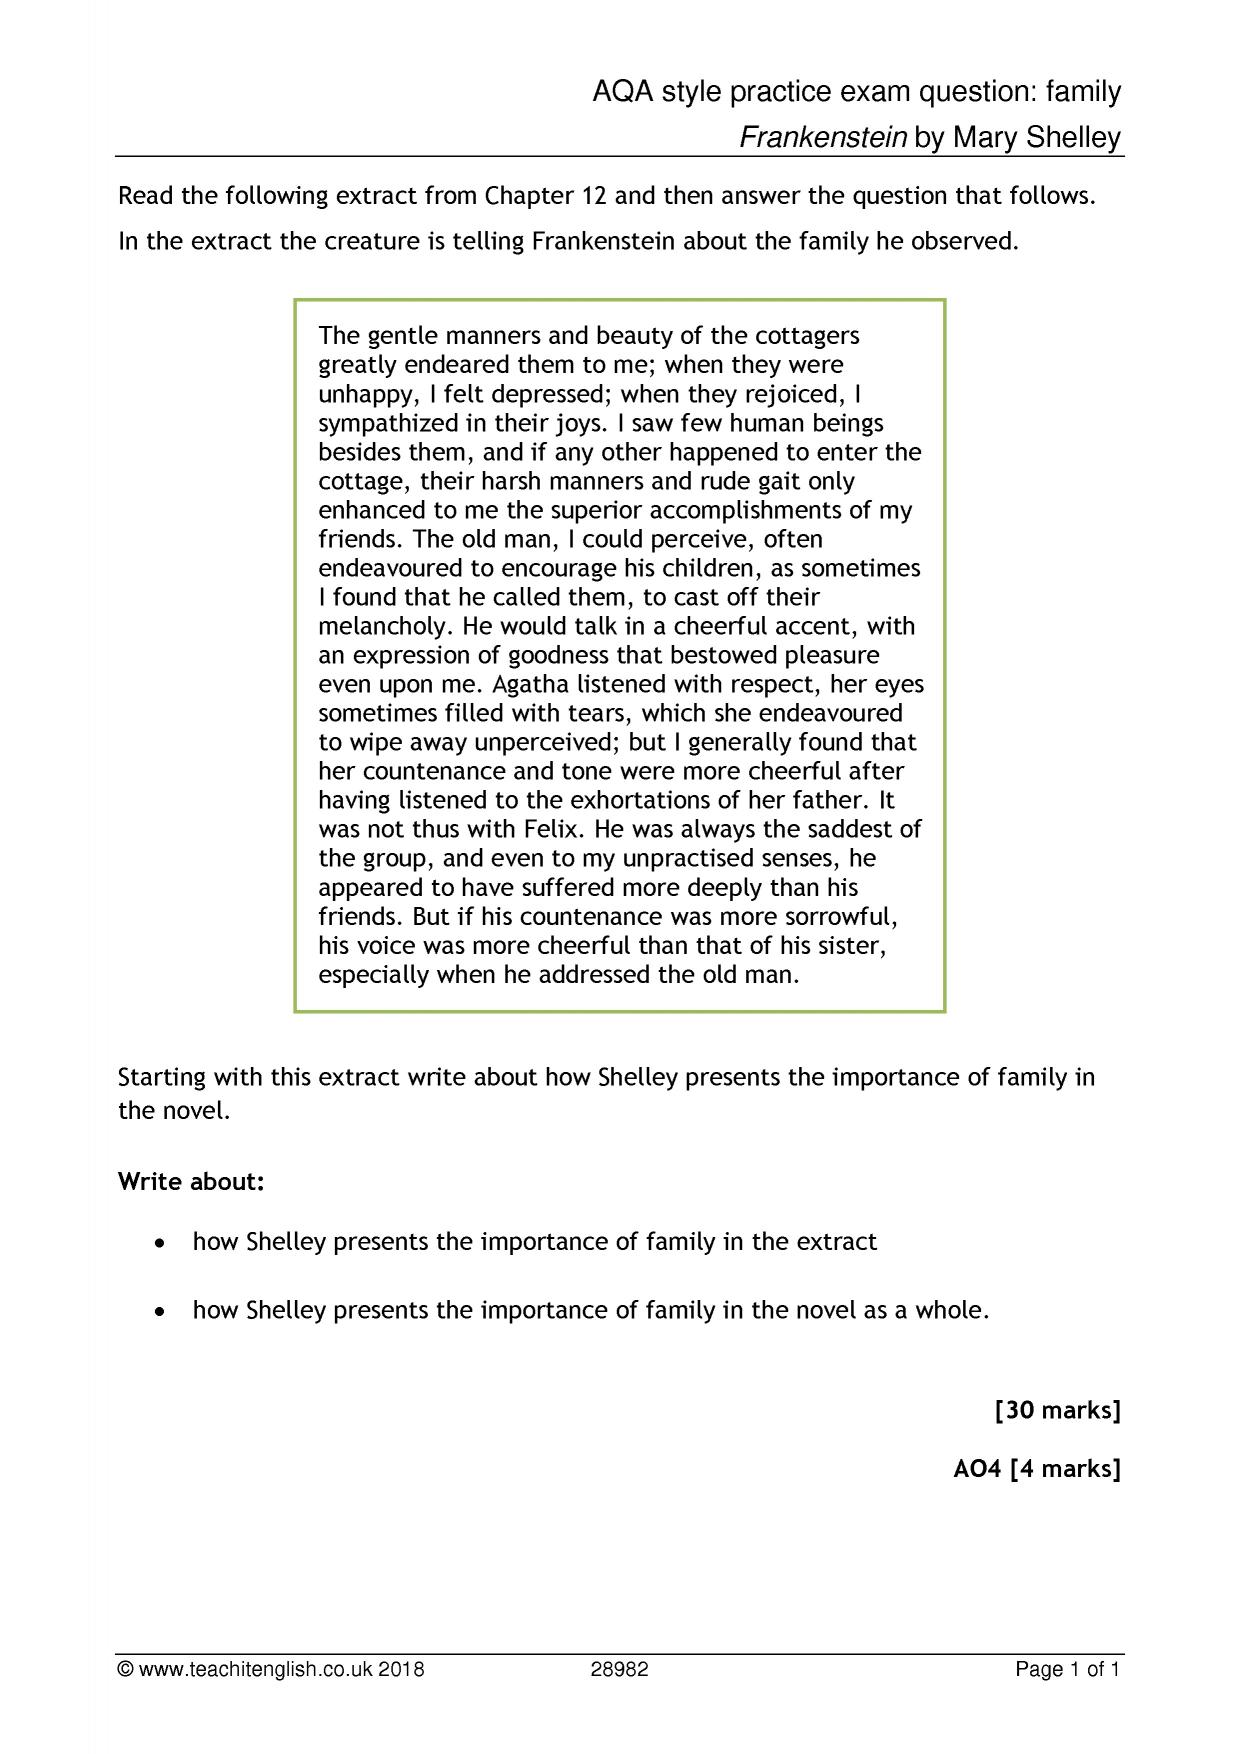 pride and prejudice questions and activities english literature essay Gcse practice questions for 'pride and prejudice' (heritage prose exam text) please note that for the passage-based questions, the exam paper will reproduce the extract, but not give you the chapter number.